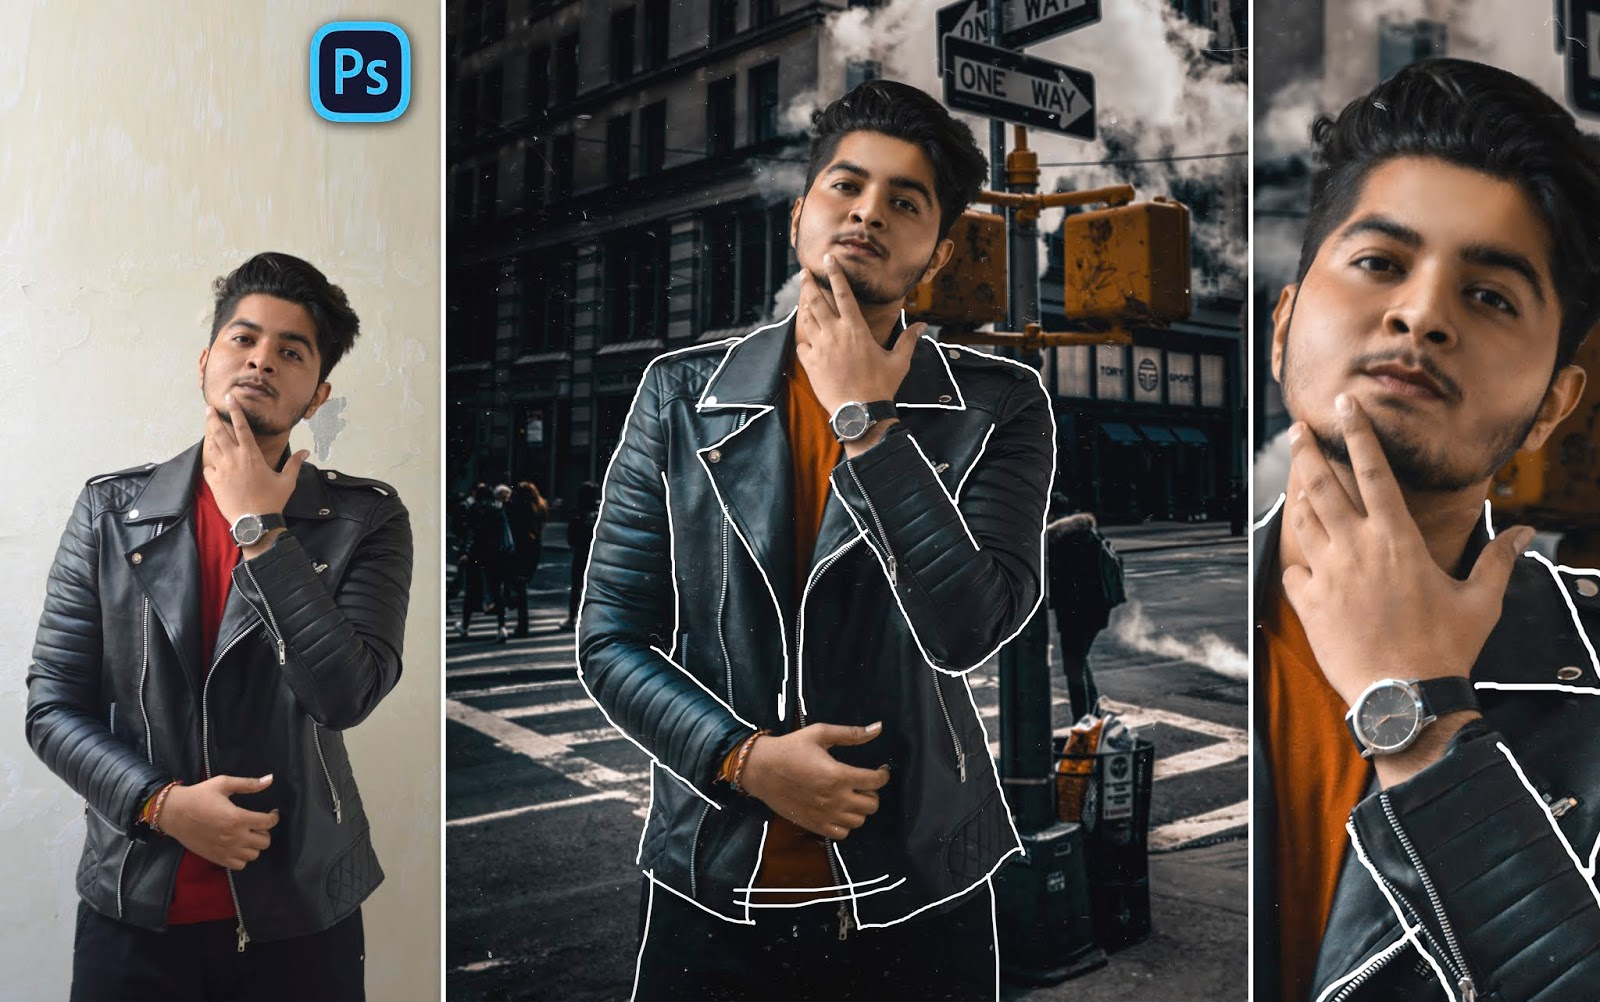 Gold Skin Like Toni Mahfud | Todler Line Effect on Jacket | How to Edit Photos Like Toni Mahfud in Photoshop